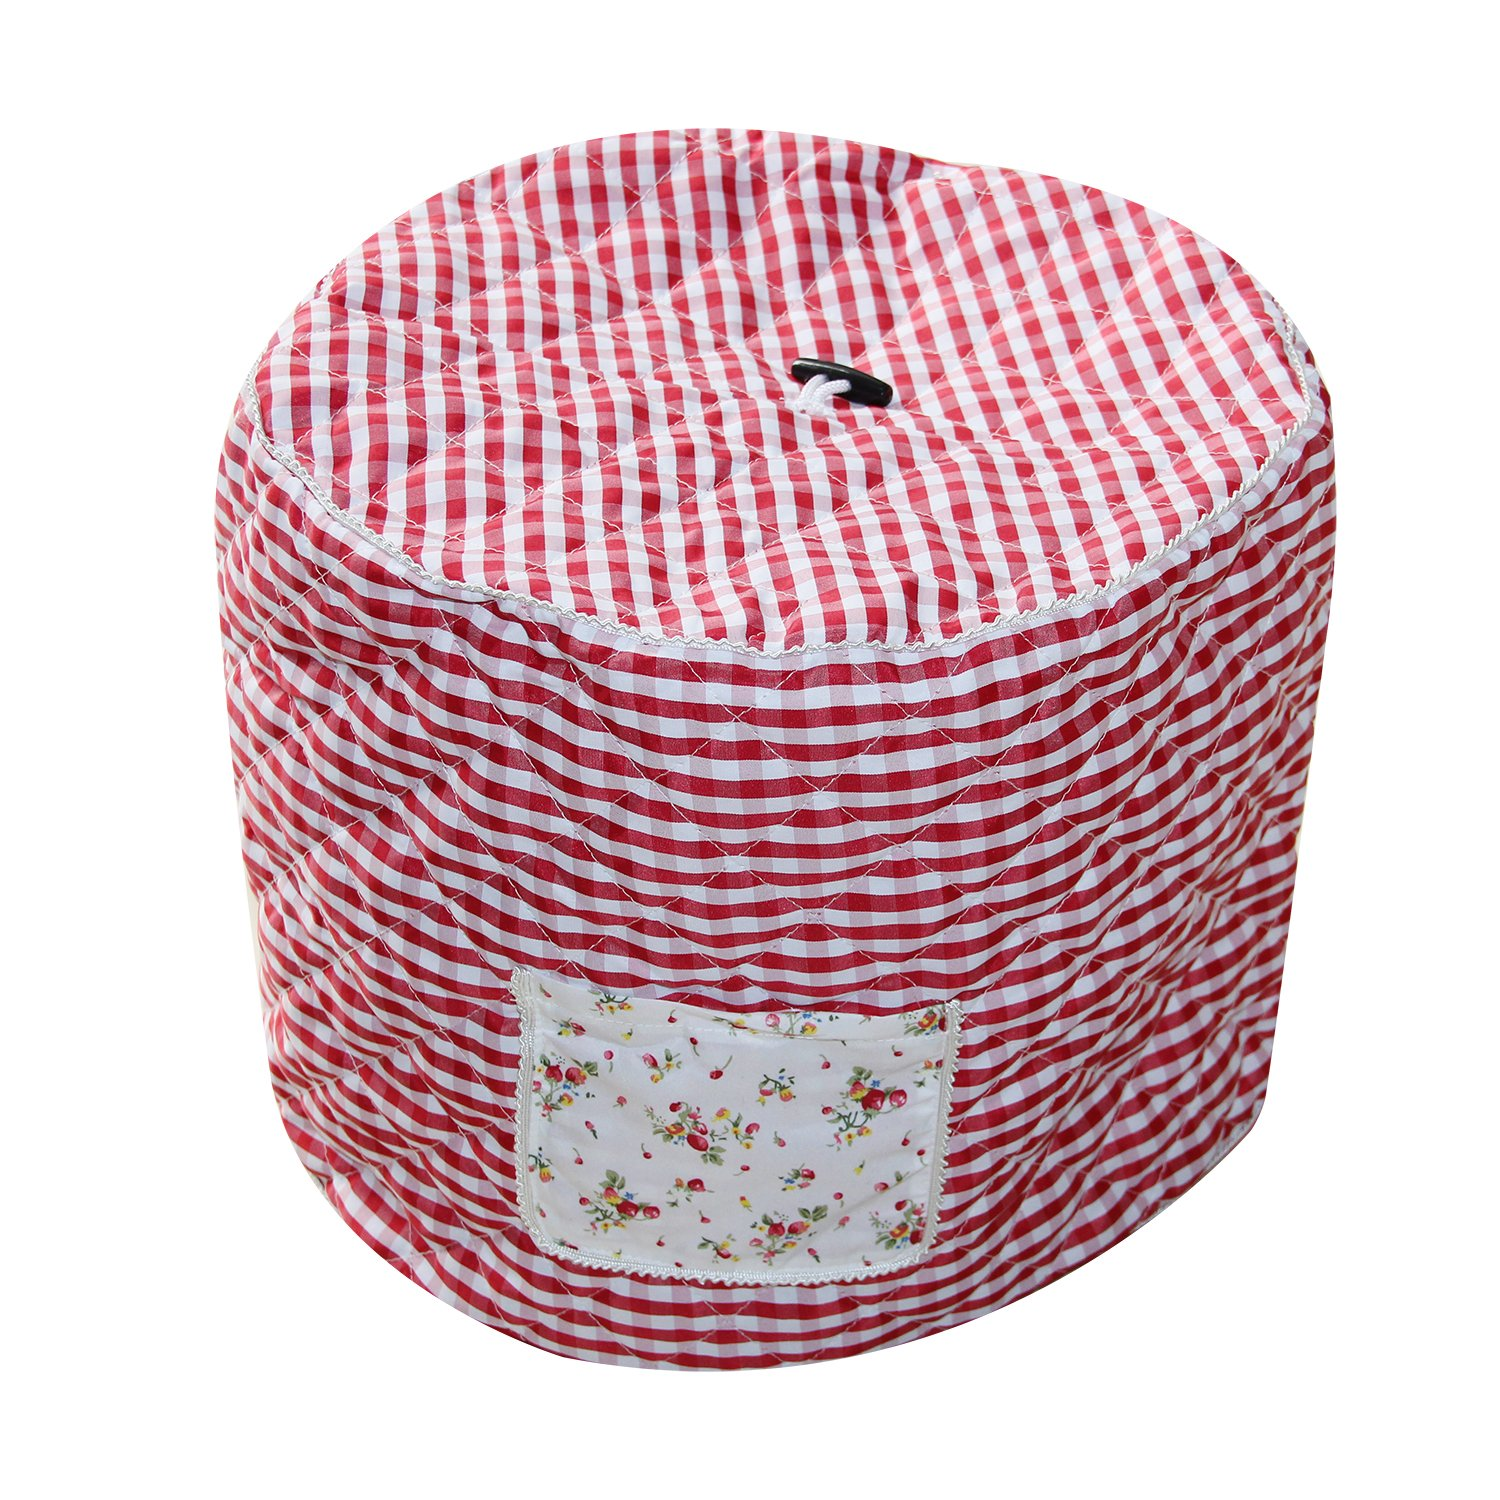 Lexvss Dust Cover, Anti-oil-smoke Cotton Bag for Electric Pressure Cookers, with Accessories Pocket, Family Essential Dust Cover for Instant Pot 6qt, by Lexvss【Red and White Gingham】 by lexvss (Image #2)